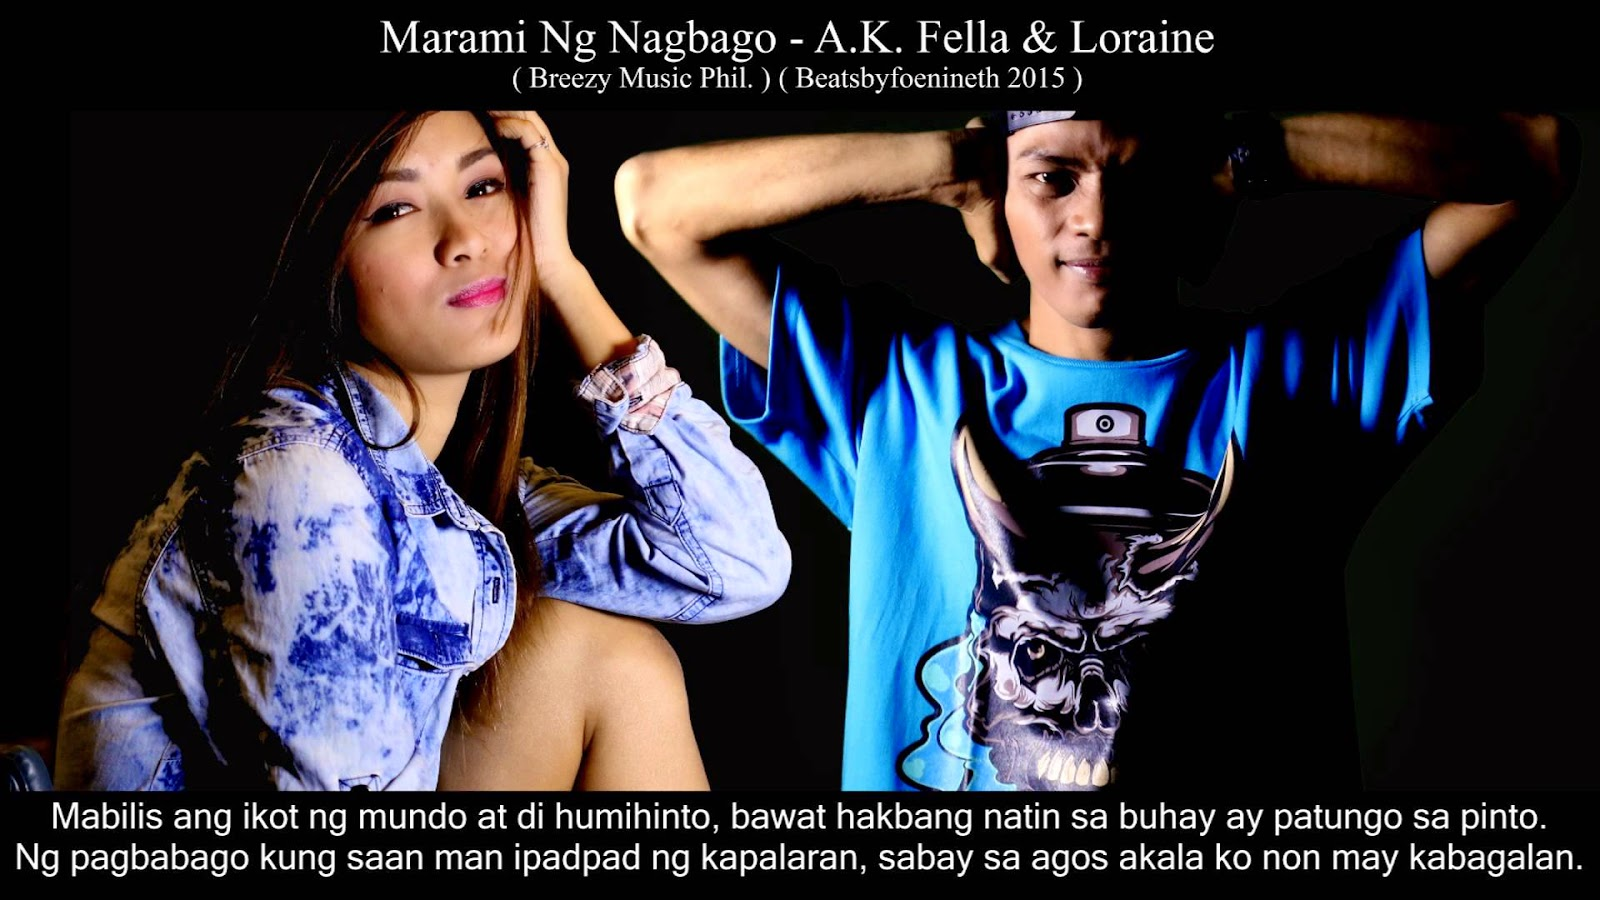 A.K. Fella & Loraine